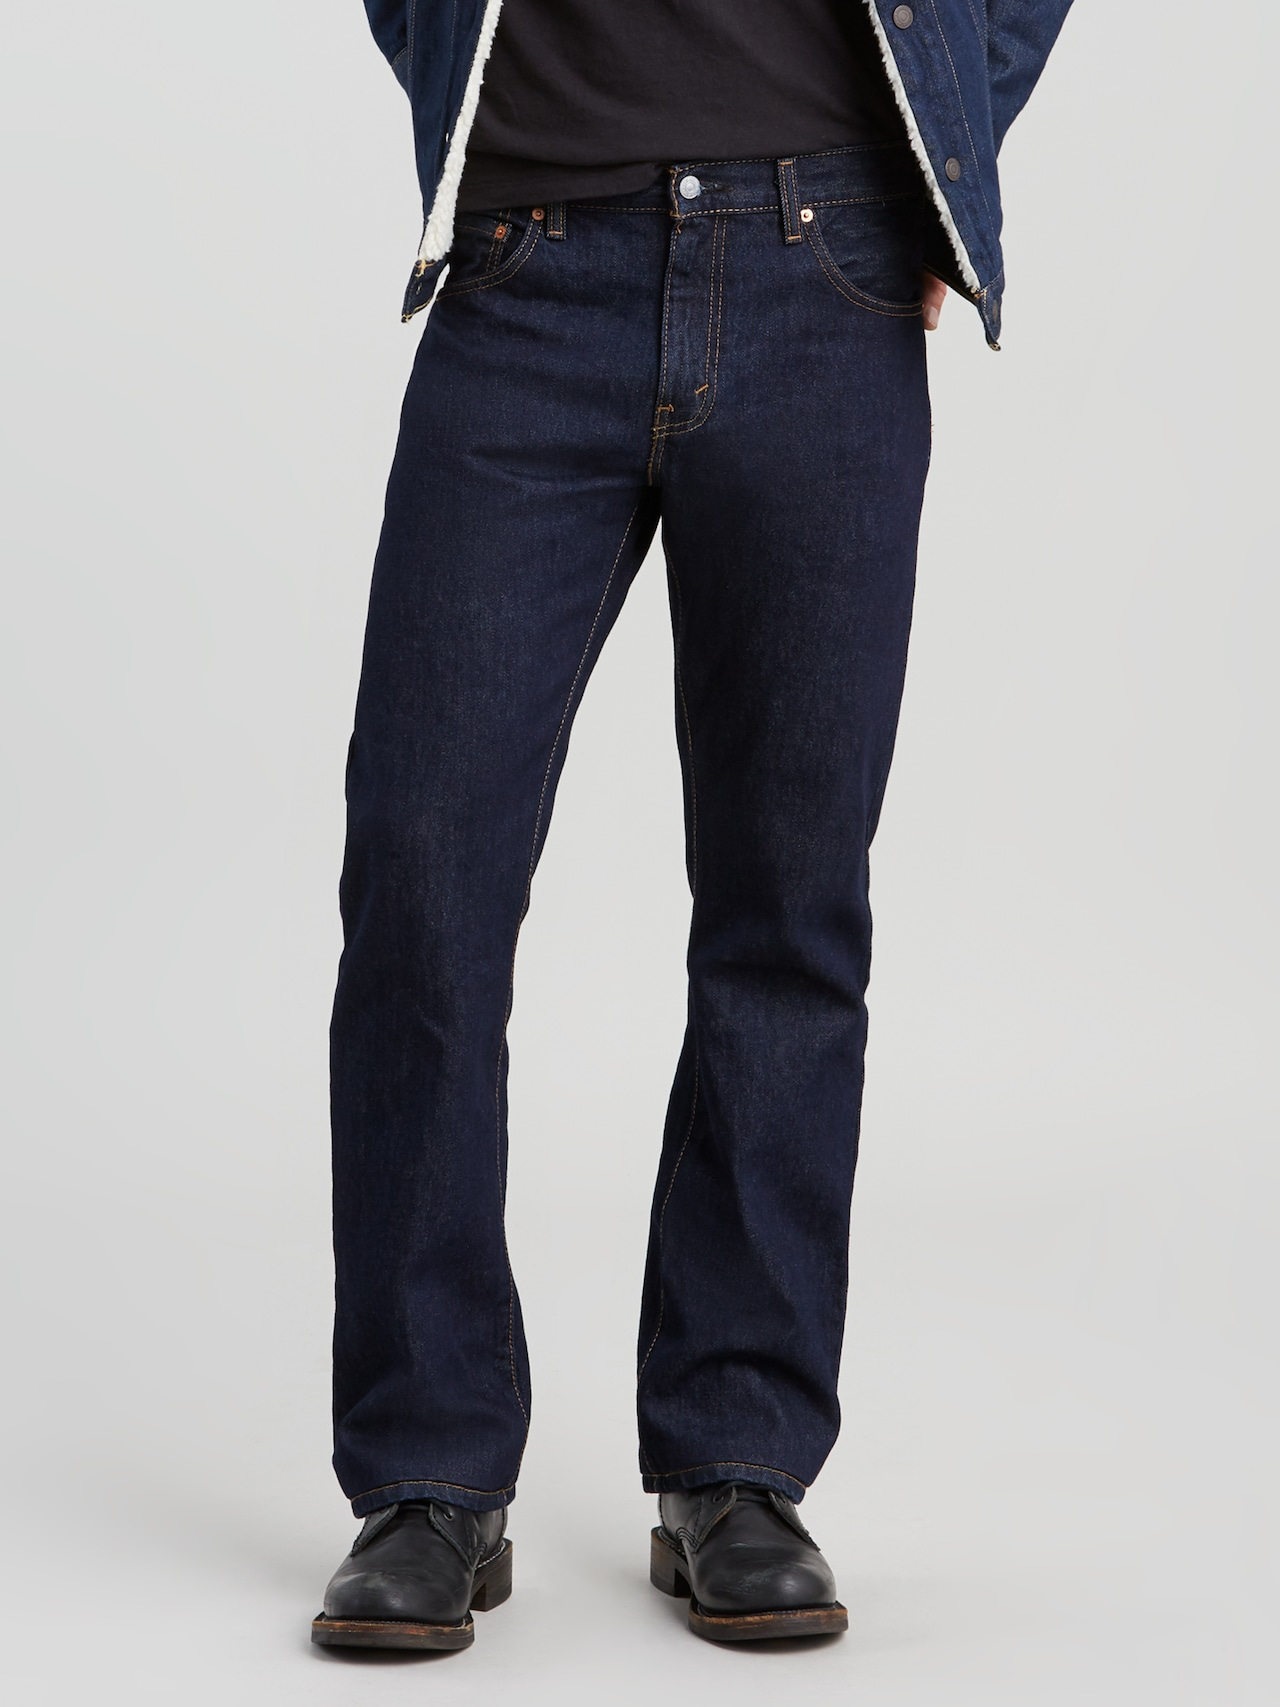 0213b2fb Levi 517 Bootcut Rinse - Just Jeans Online